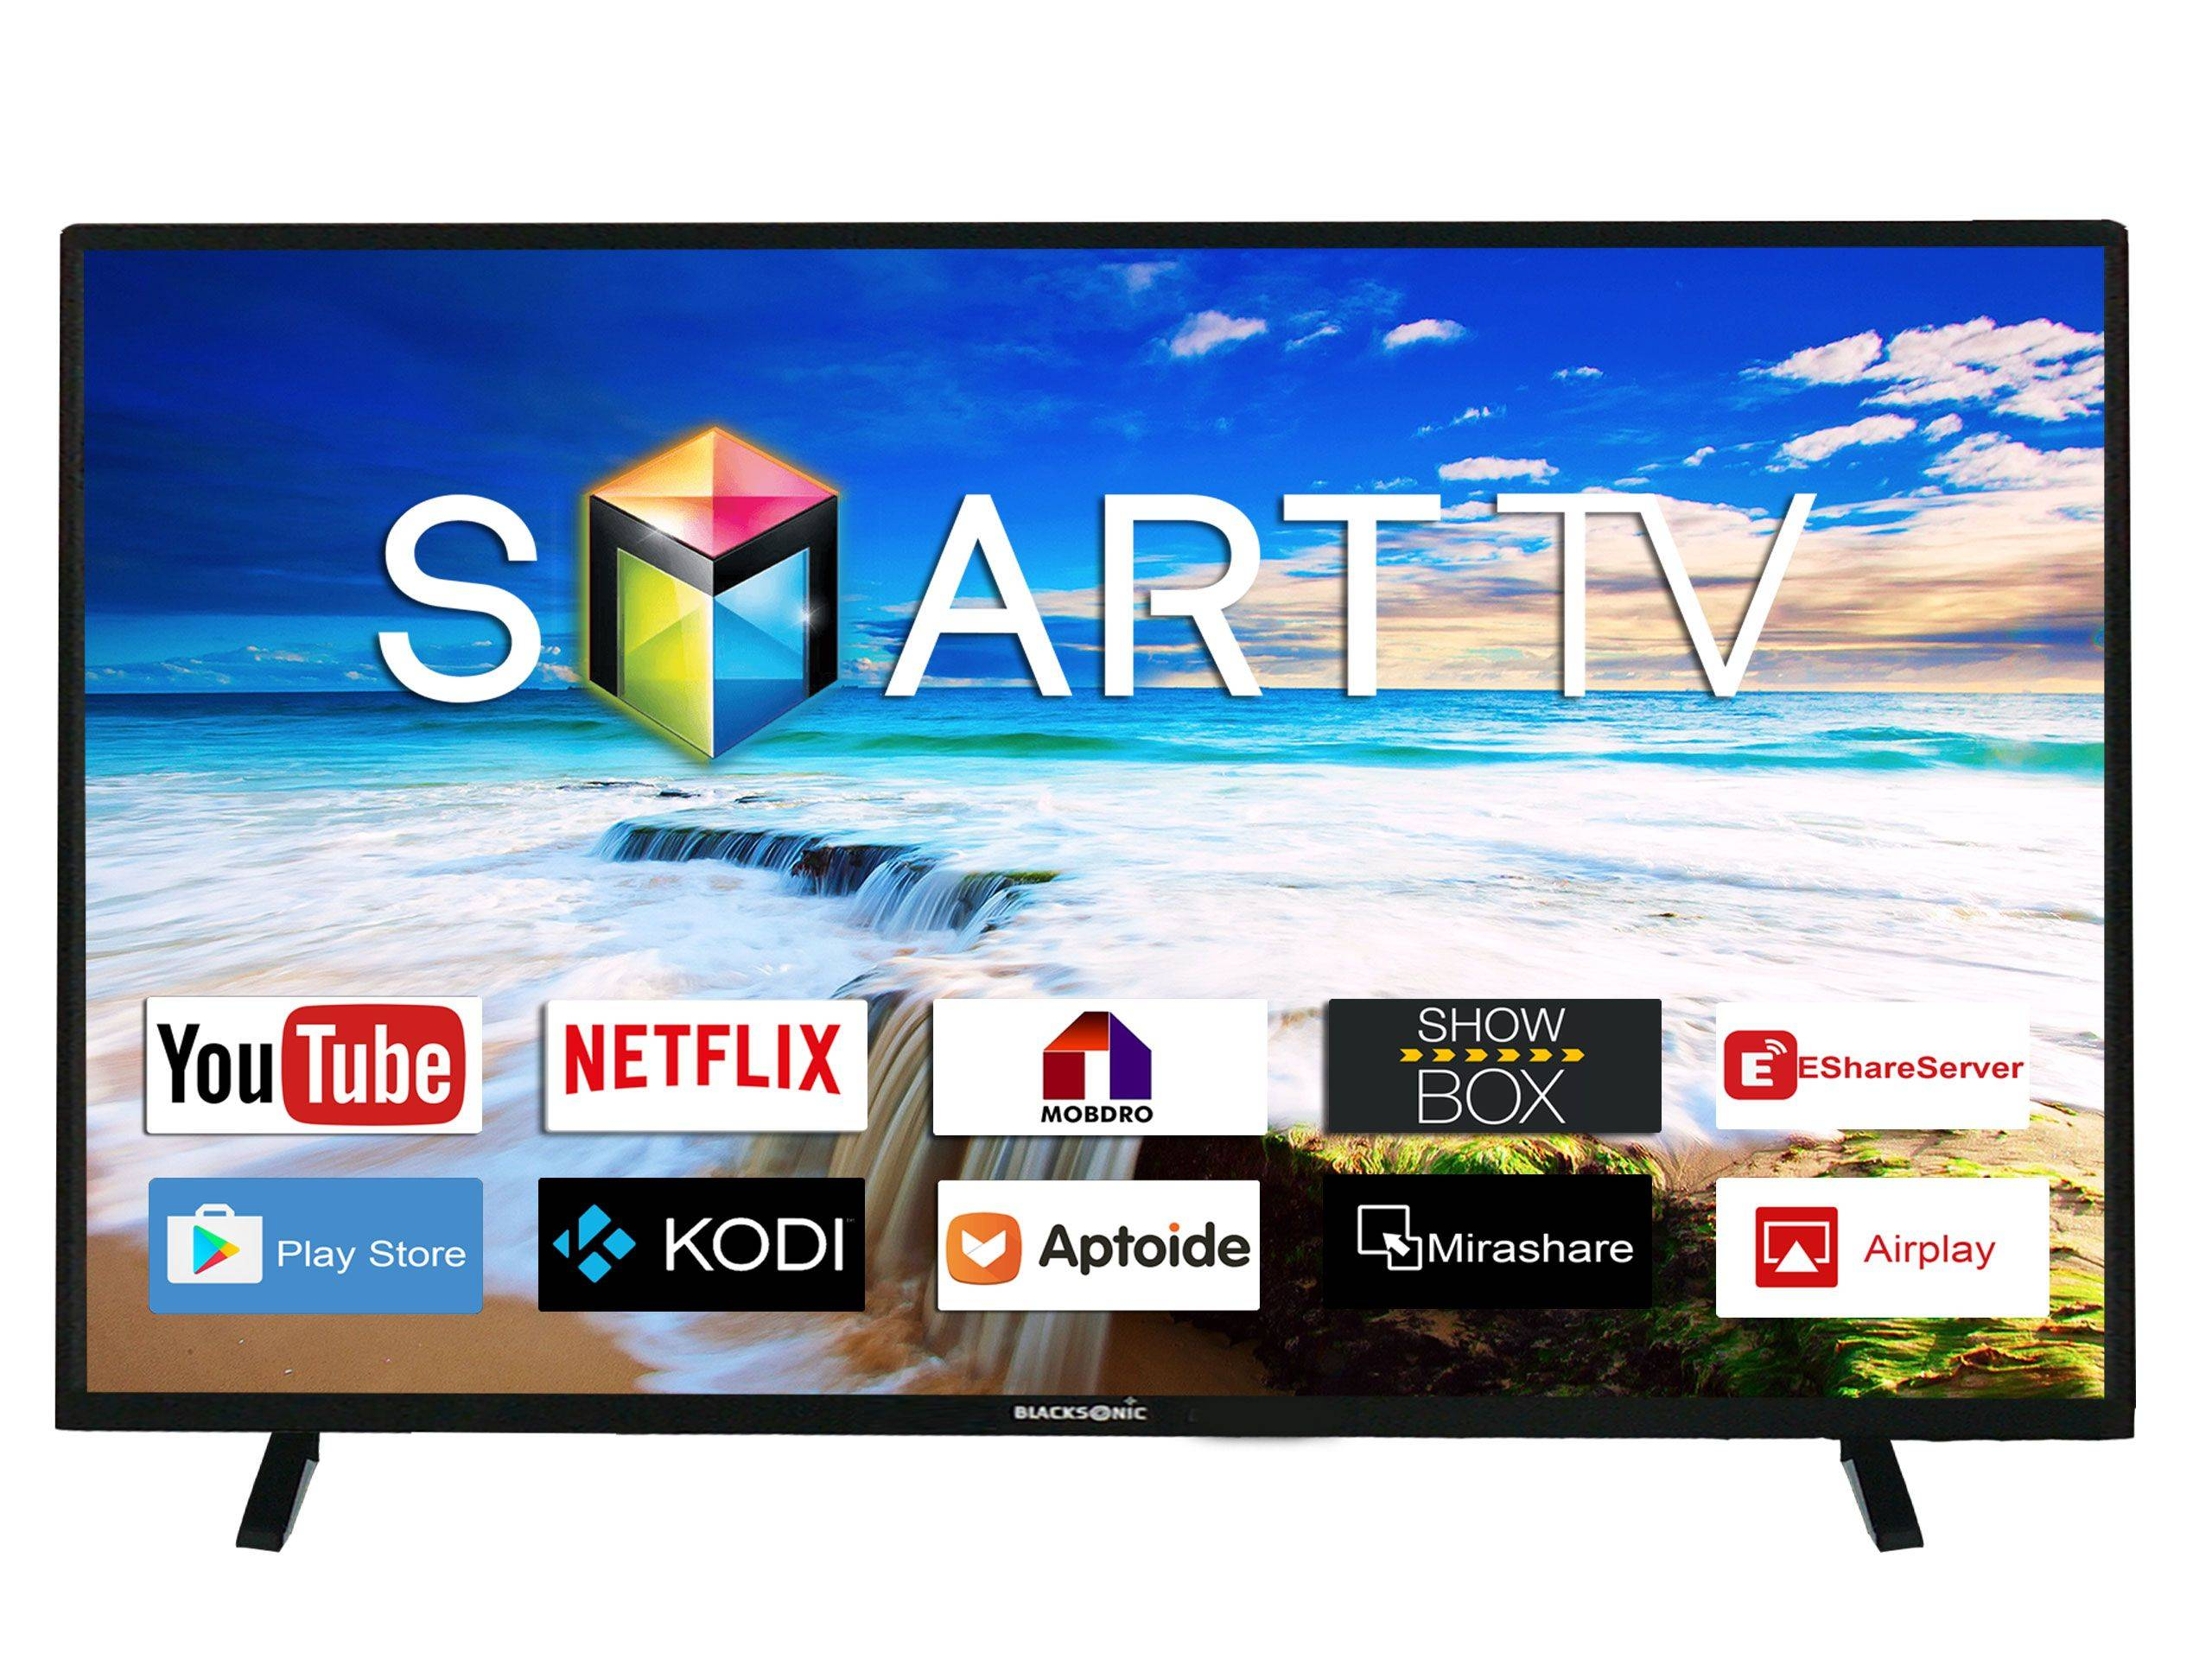 Blacksonic Full HD 39-Inch Smart Tv Dual Speed Panasonic Black Seriess